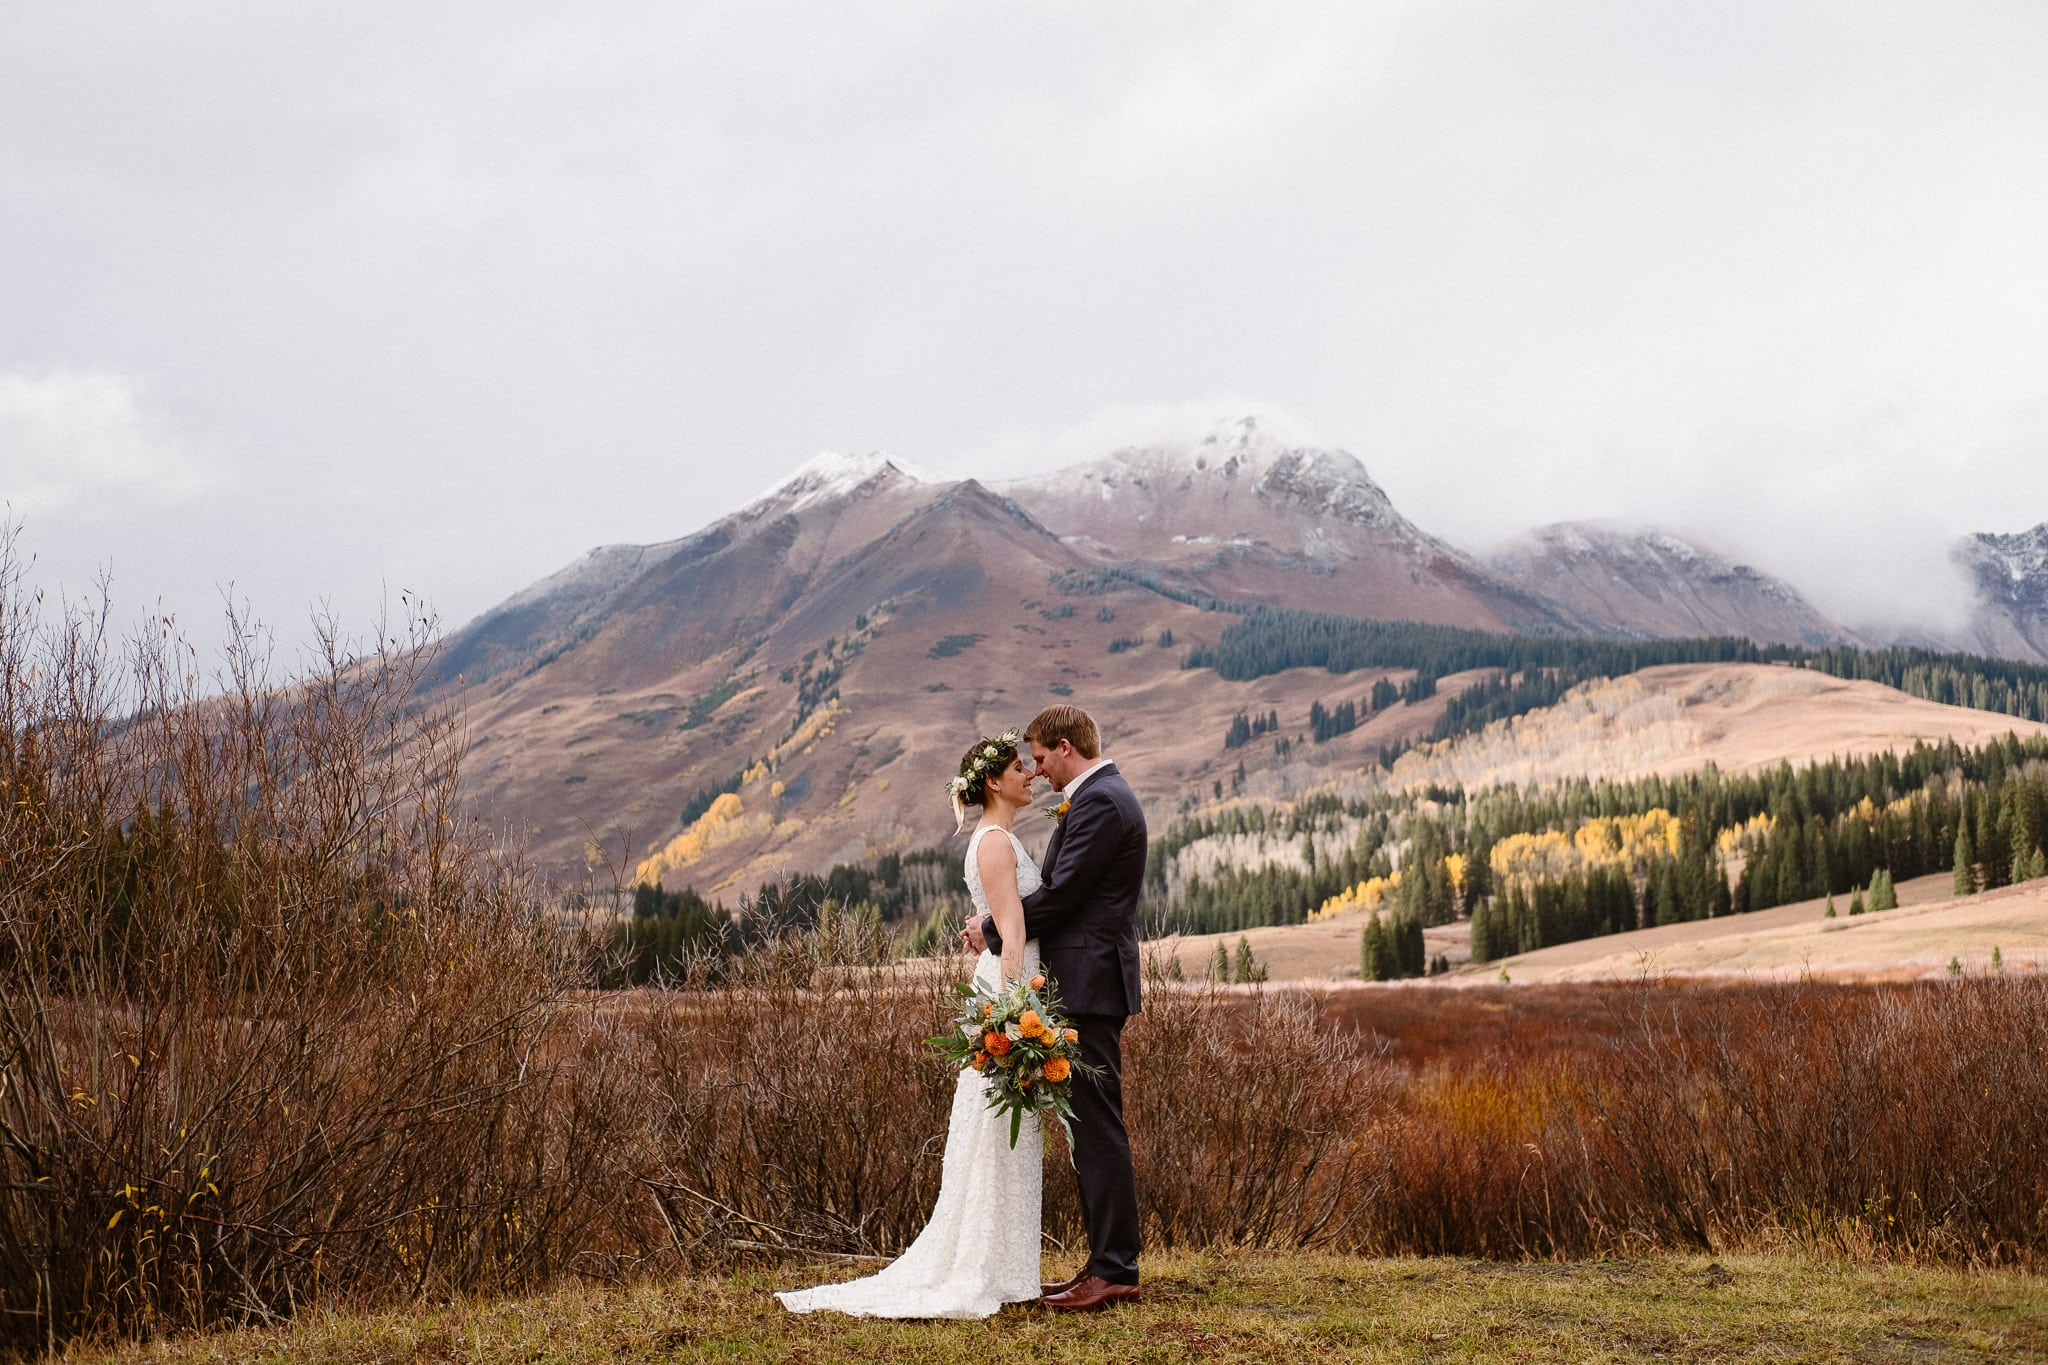 Crested Butte Wedding Photographer, Scarp Ridge Lodge intimate elopement, self solemnized elopement in Colorado, bride and groom portraits